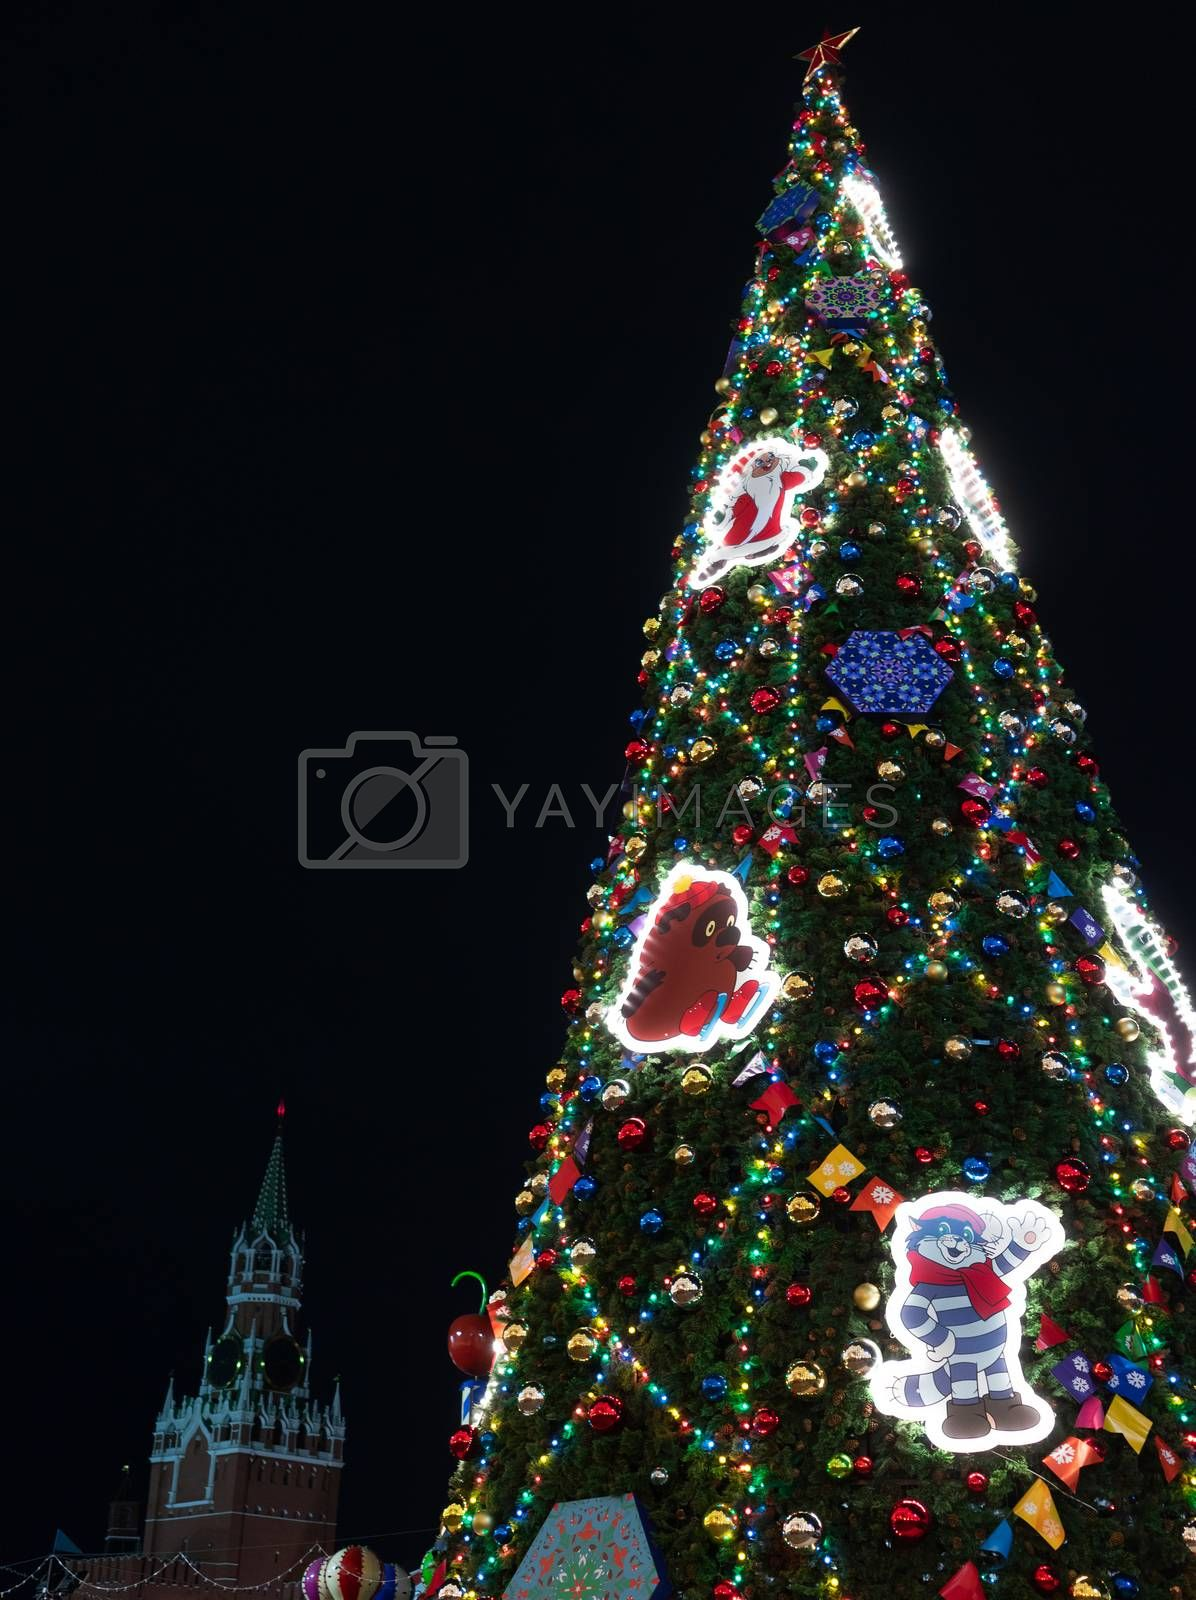 23 November 2018, Moscow, Russia. Christmas tree on red square in Moscow.